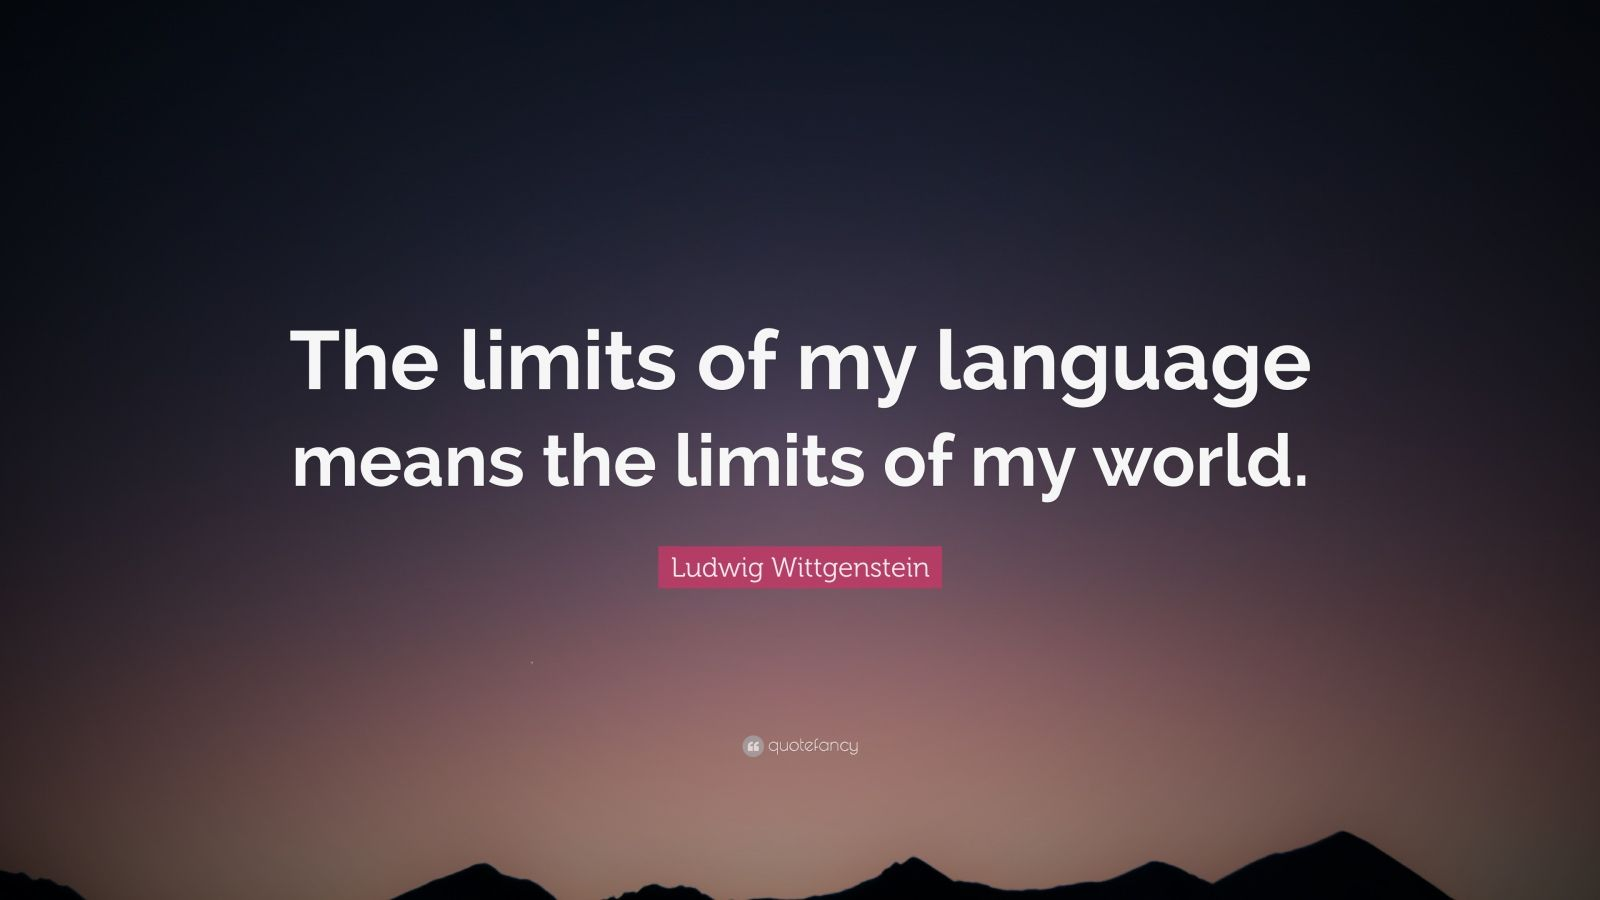 Sarcastic Wallpaper Quotes Ludwig Wittgenstein Quote The Limits Of My Language